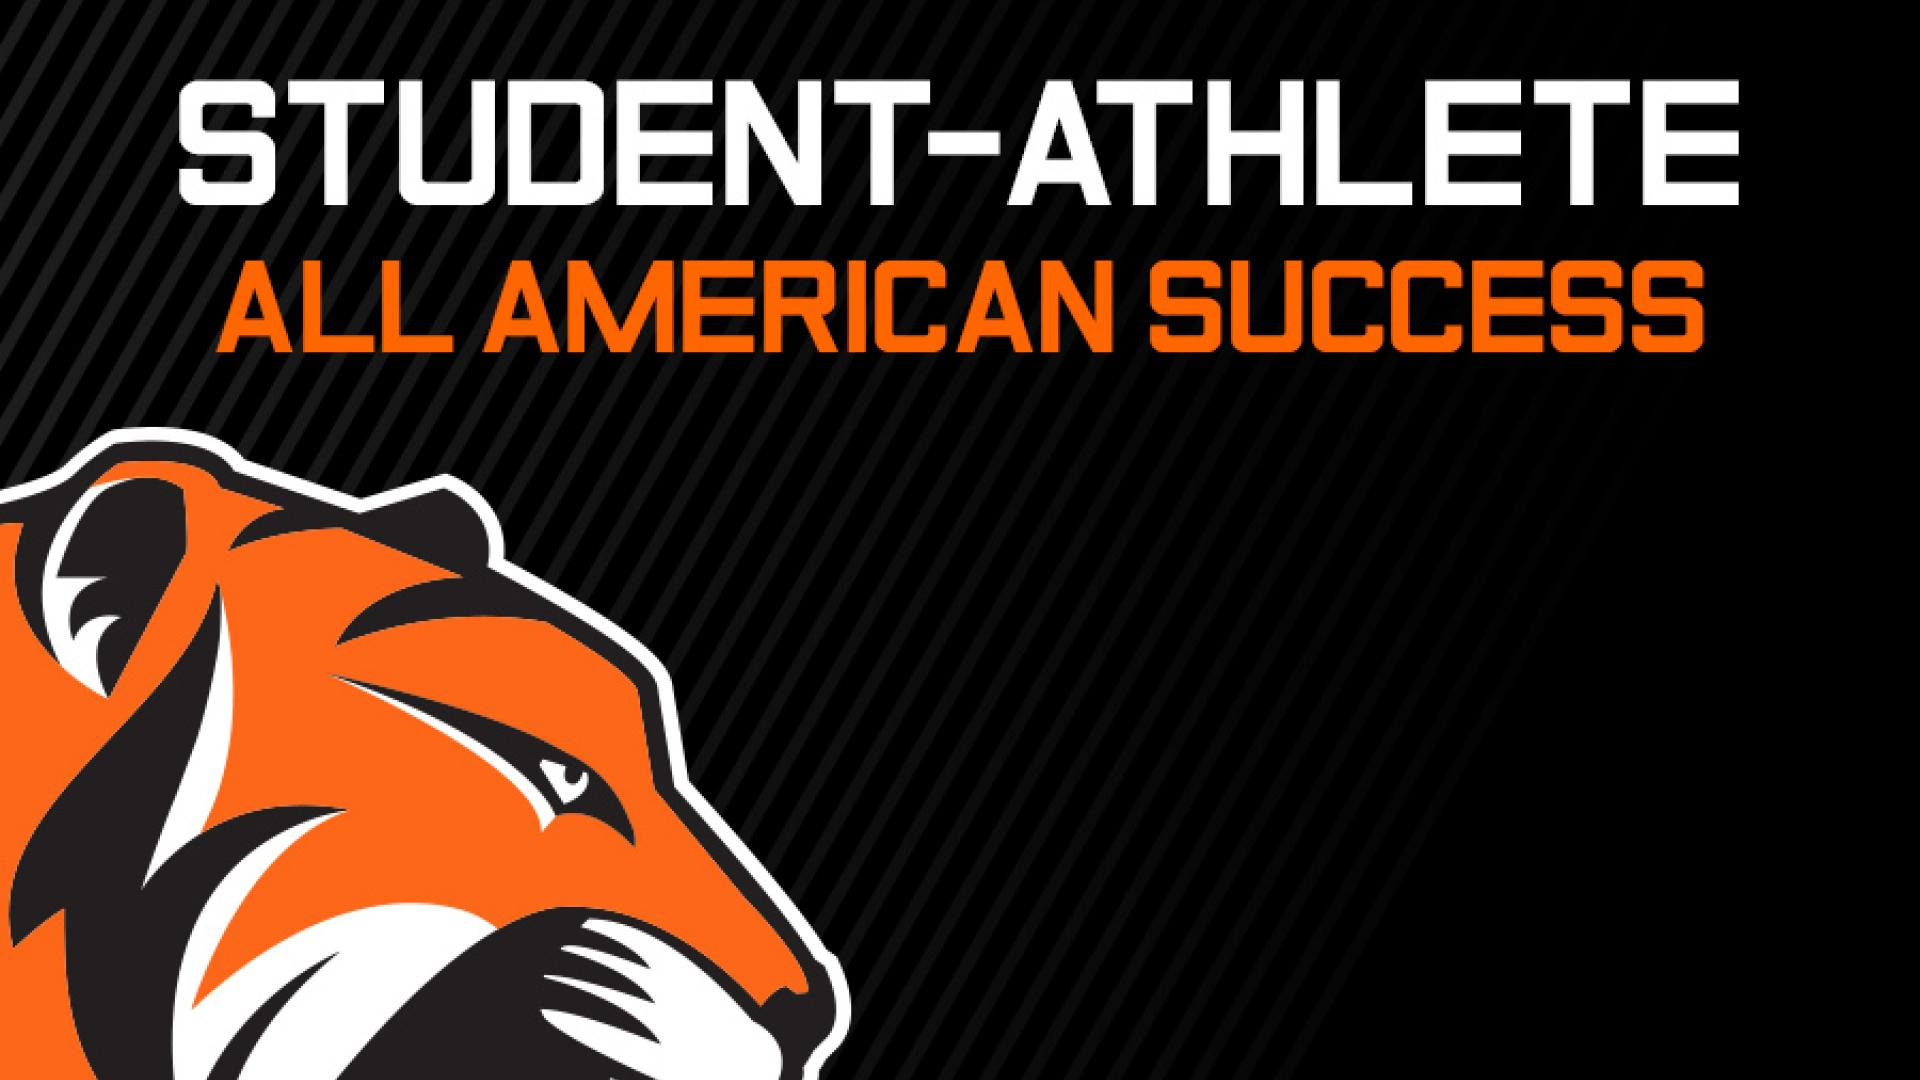 AD Takes Pride in Student-Athlete Successes